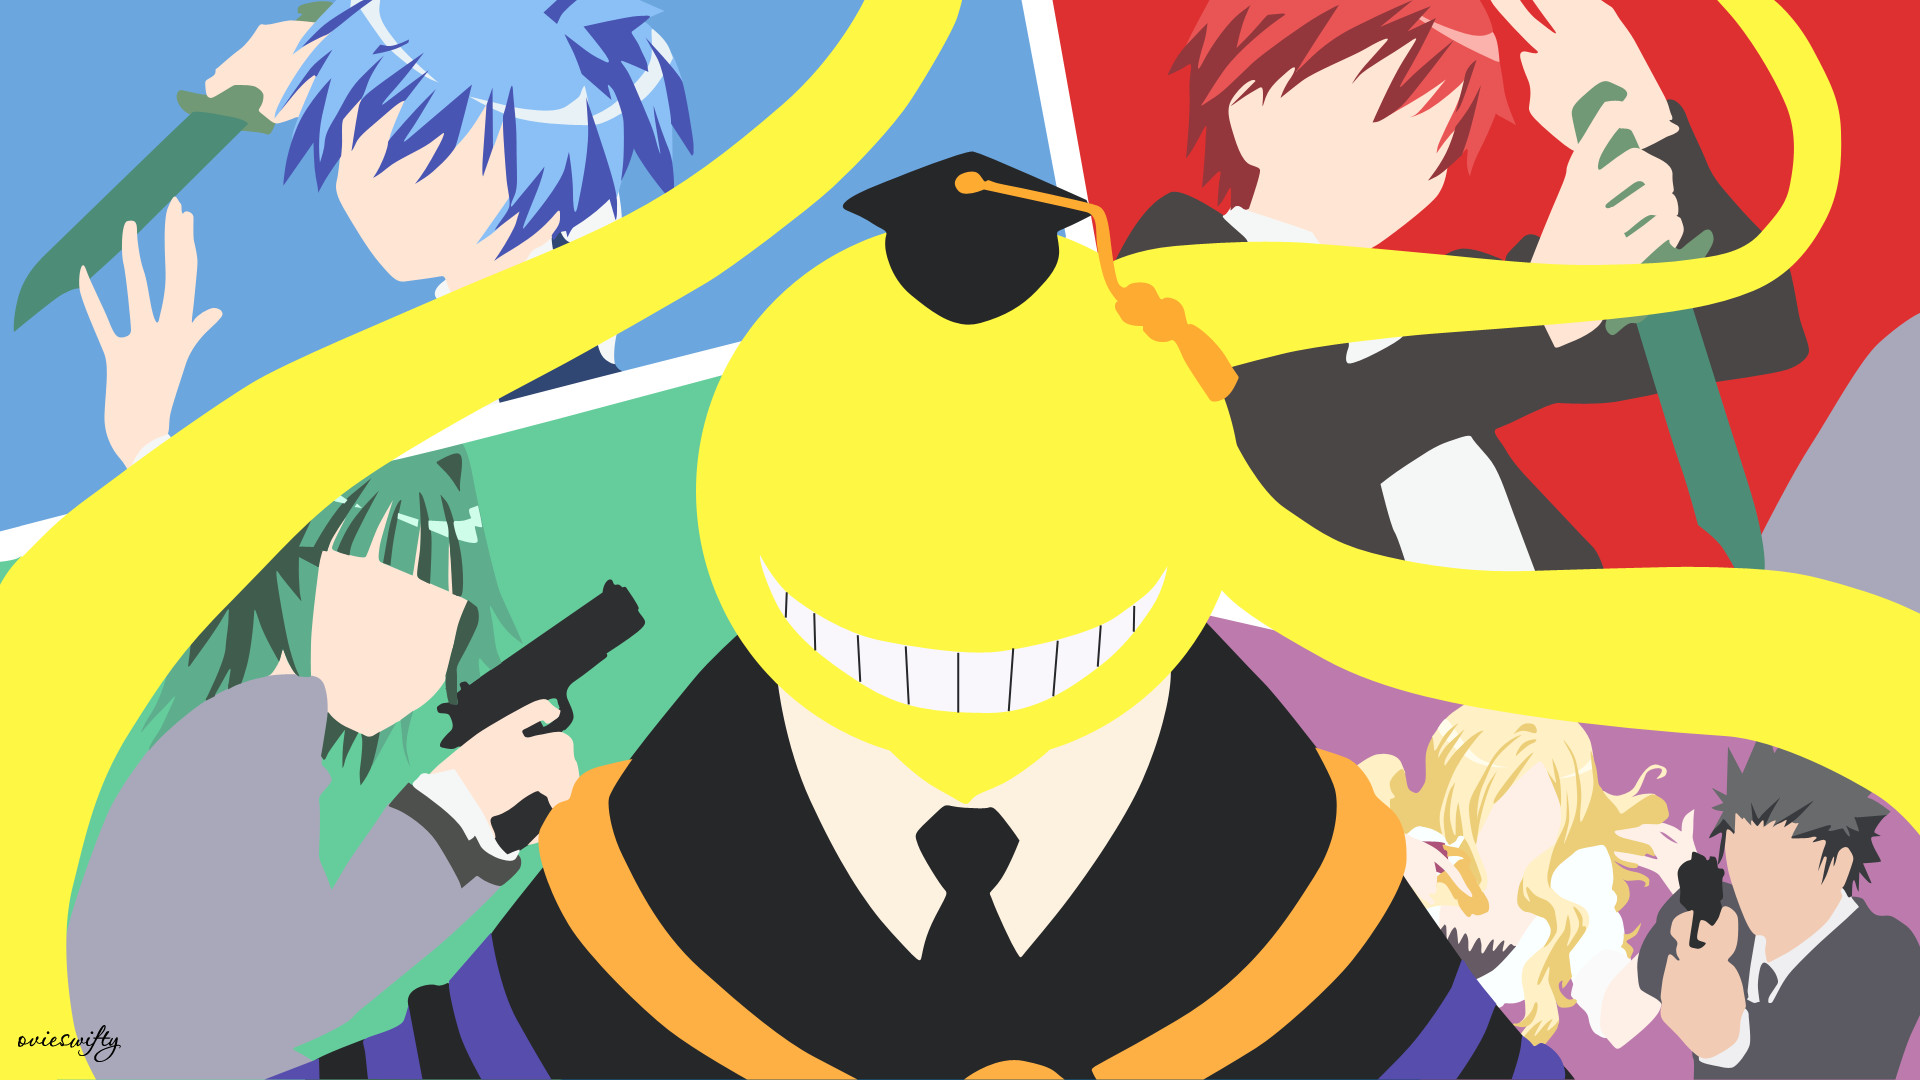 1920x1080 Full 100% Quality HD, Assassination Classroom, Ciara Bagnall